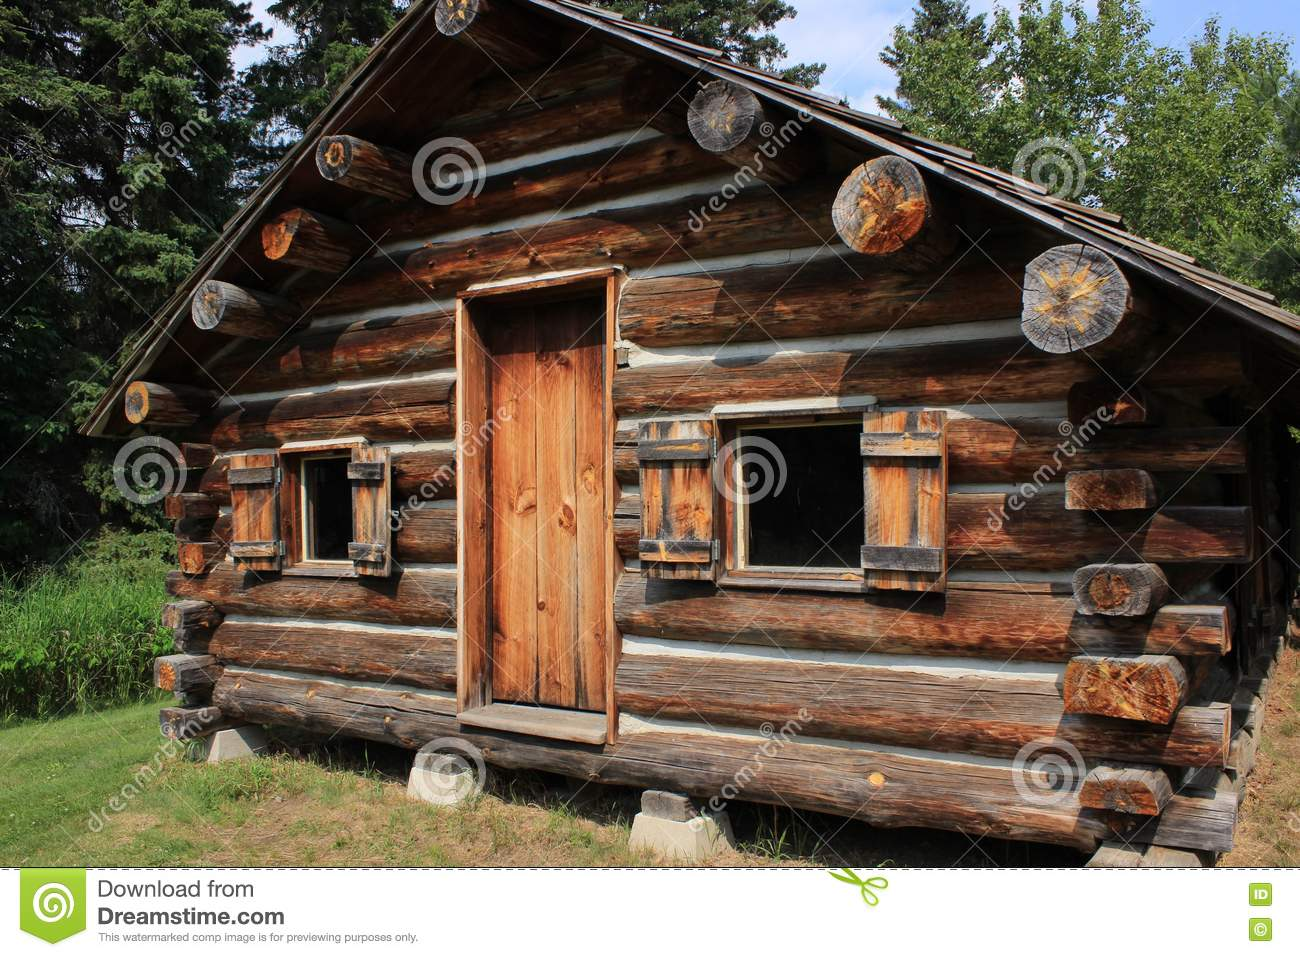 Incroyable Old Rustic Log Cabin In Minnesota